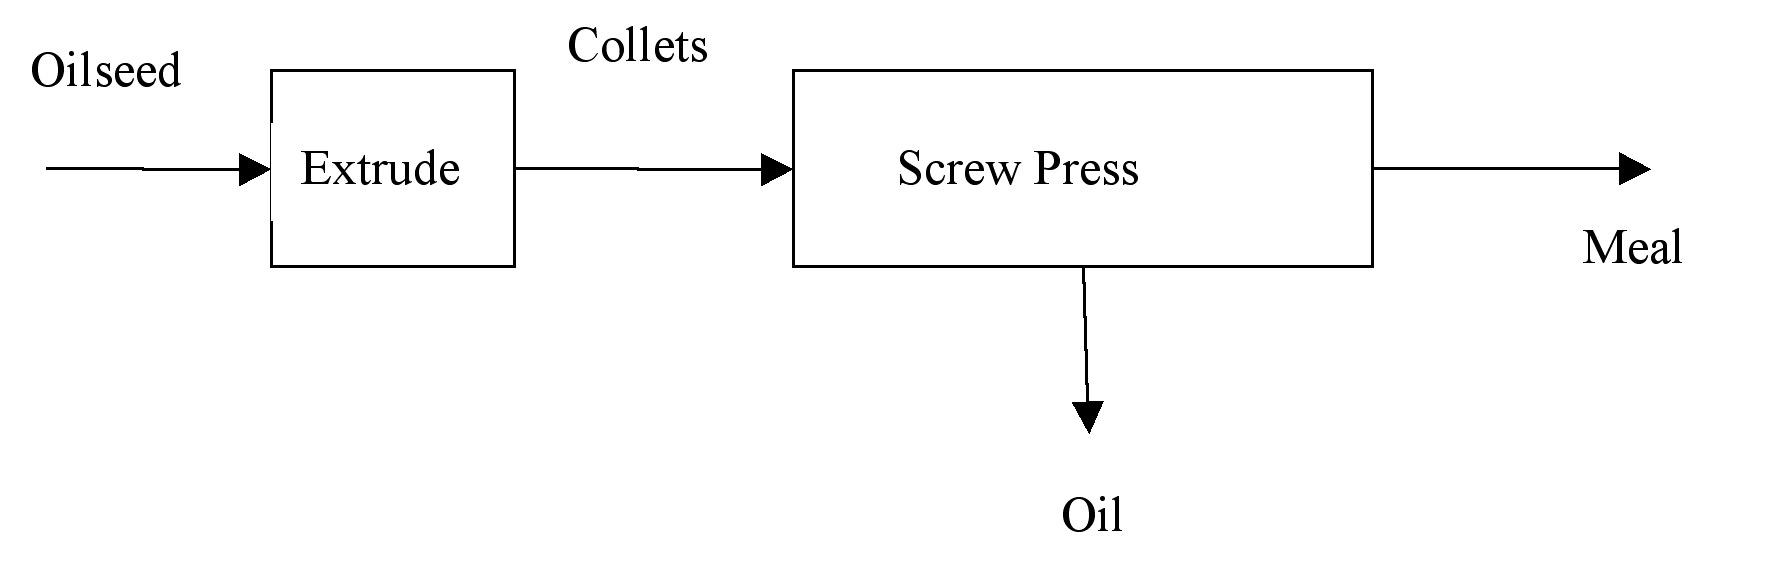 Fapc 159 oil and oilseed processing ii osu fact sheets figure 2 flow diagram of an extrusion expelling e e process nvjuhfo Image collections